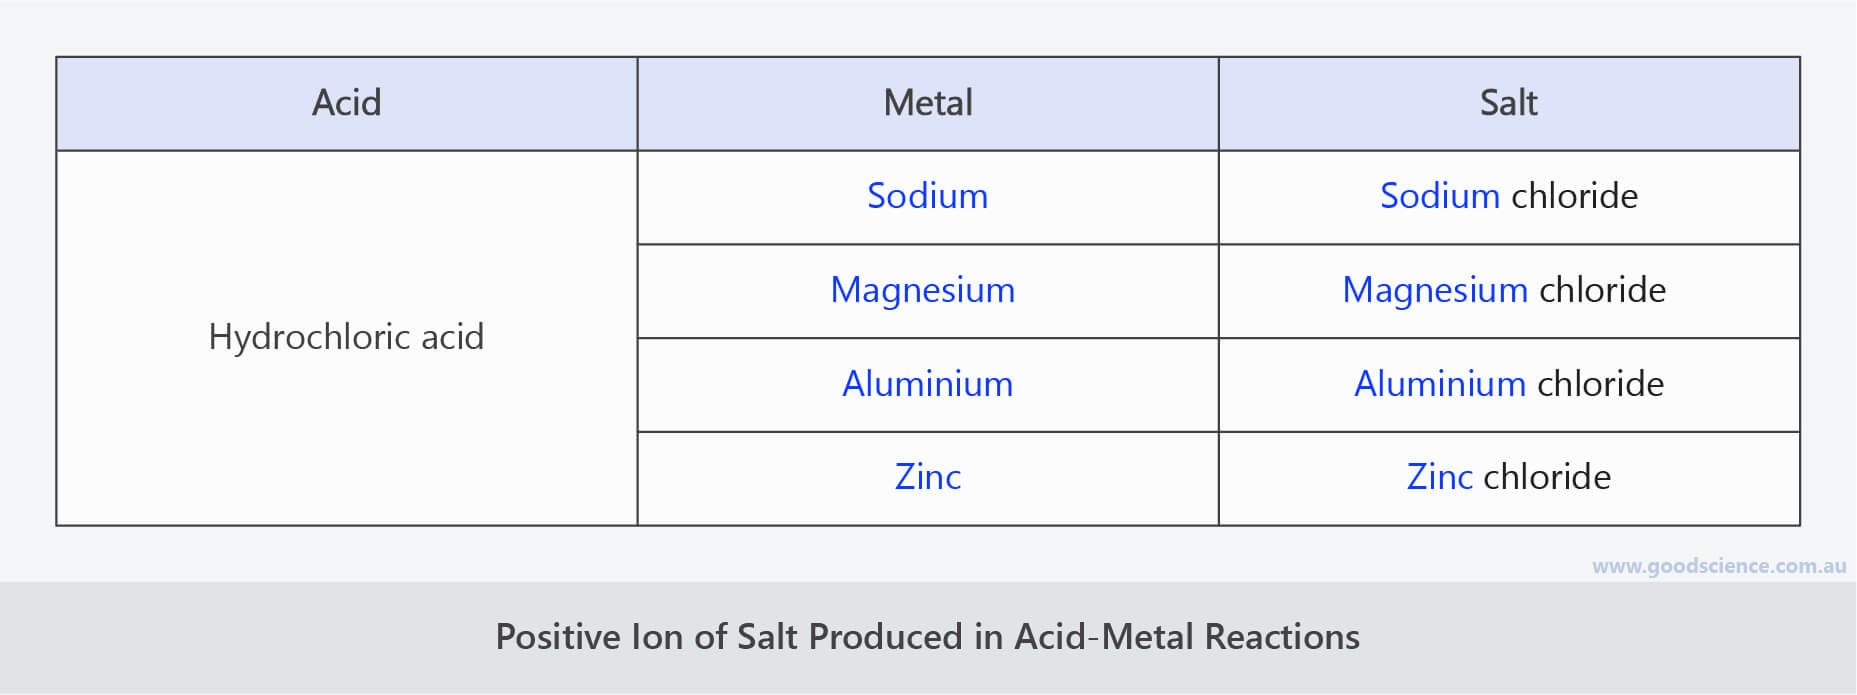 acid metal reaction salt positive ion